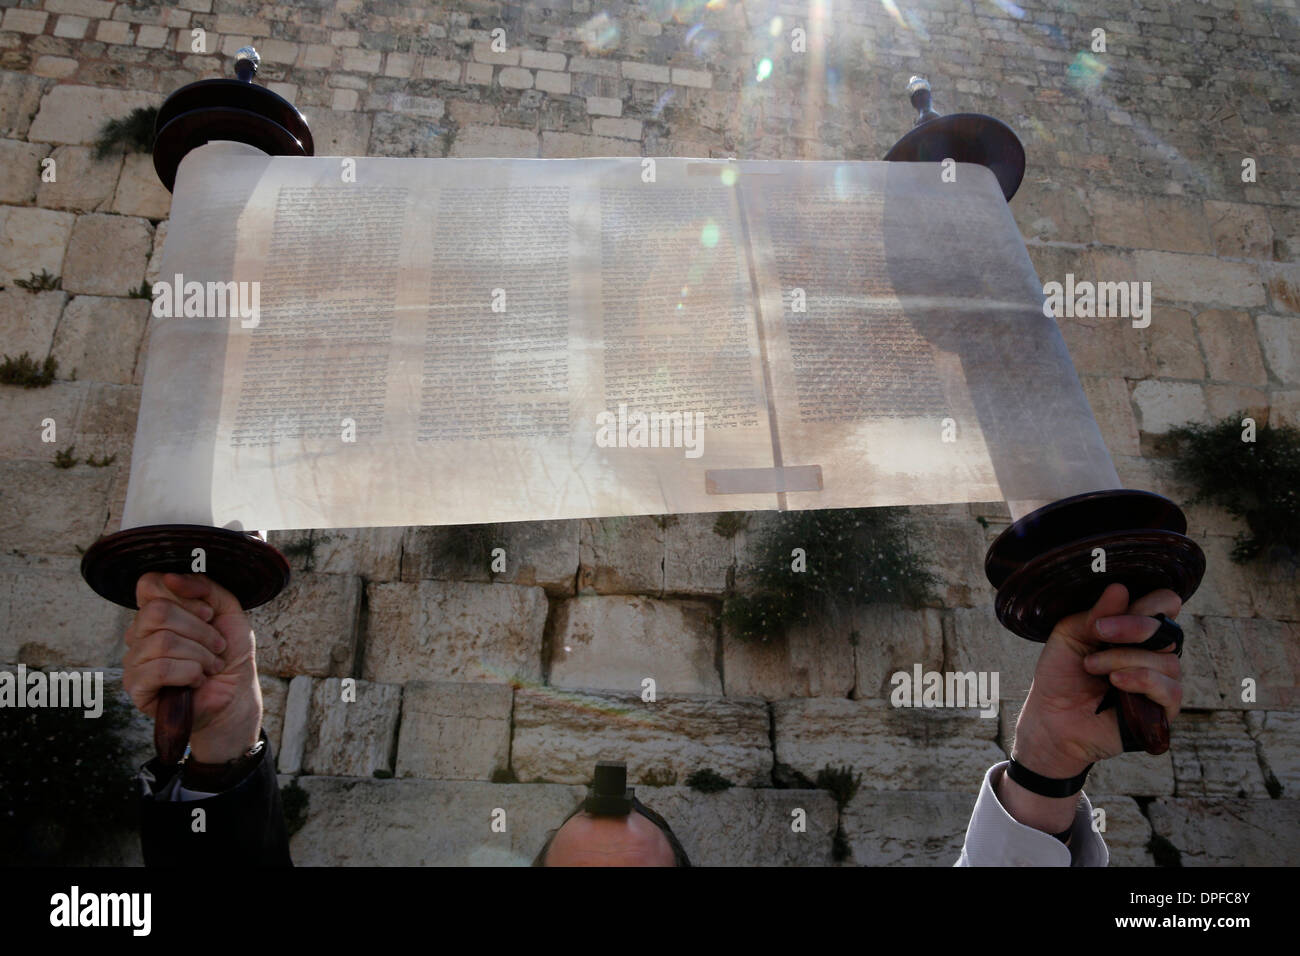 A ceremonial reading of the Torah from Torah scroll under the Western Wall, Jerusalem, Israel, Middle East - Stock Image